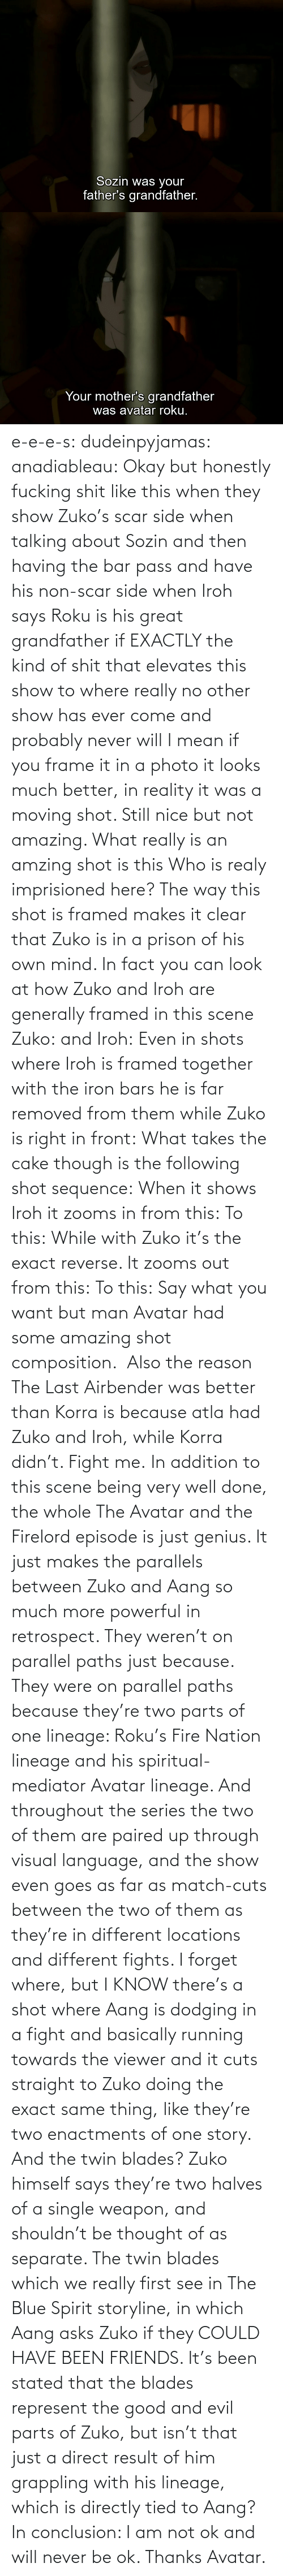 Directly: e-e-e-s: dudeinpyjamas:   anadiableau: Okay but honestly fucking shit like this when they show Zuko's scar side when talking about Sozin and then having the bar pass and have his non-scar side when Iroh says Roku is his great grandfather if EXACTLY the kind of shit that elevates this show to where really no other show has ever come and probably never will I mean if you frame it in a photo it looks much better, in reality it was a moving shot. Still nice but not amazing. What really is an amzing shot is this Who is realy imprisioned here? The way this shot is framed makes it clear that Zuko is in a prison of his own mind. In fact you can look at how Zuko and Iroh are generally framed in this scene Zuko: and Iroh: Even in shots where Iroh is framed together with the iron bars he is far removed from them while Zuko is right in front:  What takes the cake though is the following shot sequence: When it shows Iroh it zooms in from this: To this: While with Zuko it's the exact reverse. It zooms out from this: To this: Say what you want but man Avatar had some amazing shot composition.   Also the reason The Last Airbender was better than Korra is because atla had Zuko and Iroh, while Korra didn't. Fight me.    In addition to this scene being very well done, the whole The Avatar and the Firelord episode is just genius.  It just makes the parallels between Zuko and Aang so much more powerful in retrospect.  They weren't on parallel paths just because.  They were on parallel paths because they're two parts of one lineage: Roku's Fire Nation lineage and his spiritual-mediator Avatar lineage.  And throughout the series the two of them are paired up through visual language, and the show even goes as far as match-cuts between the two of them as they're in different locations and different fights.  I forget where, but I KNOW there's a shot where Aang is dodging in a fight and basically running towards the viewer and it cuts straight to Zuko doing the exact same thing, like they're two enactments of one story.   And the twin blades?  Zuko himself says they're two halves of a single weapon, and shouldn't be thought of as separate.  The twin blades which we really first see in The Blue Spirit storyline, in which Aang asks Zuko if they COULD HAVE BEEN FRIENDS.  It's been stated that the blades represent the good and evil parts of Zuko, but isn't that just a direct result of him grappling with his lineage, which is directly tied to Aang? In conclusion: I am not ok and will never be ok.  Thanks Avatar.